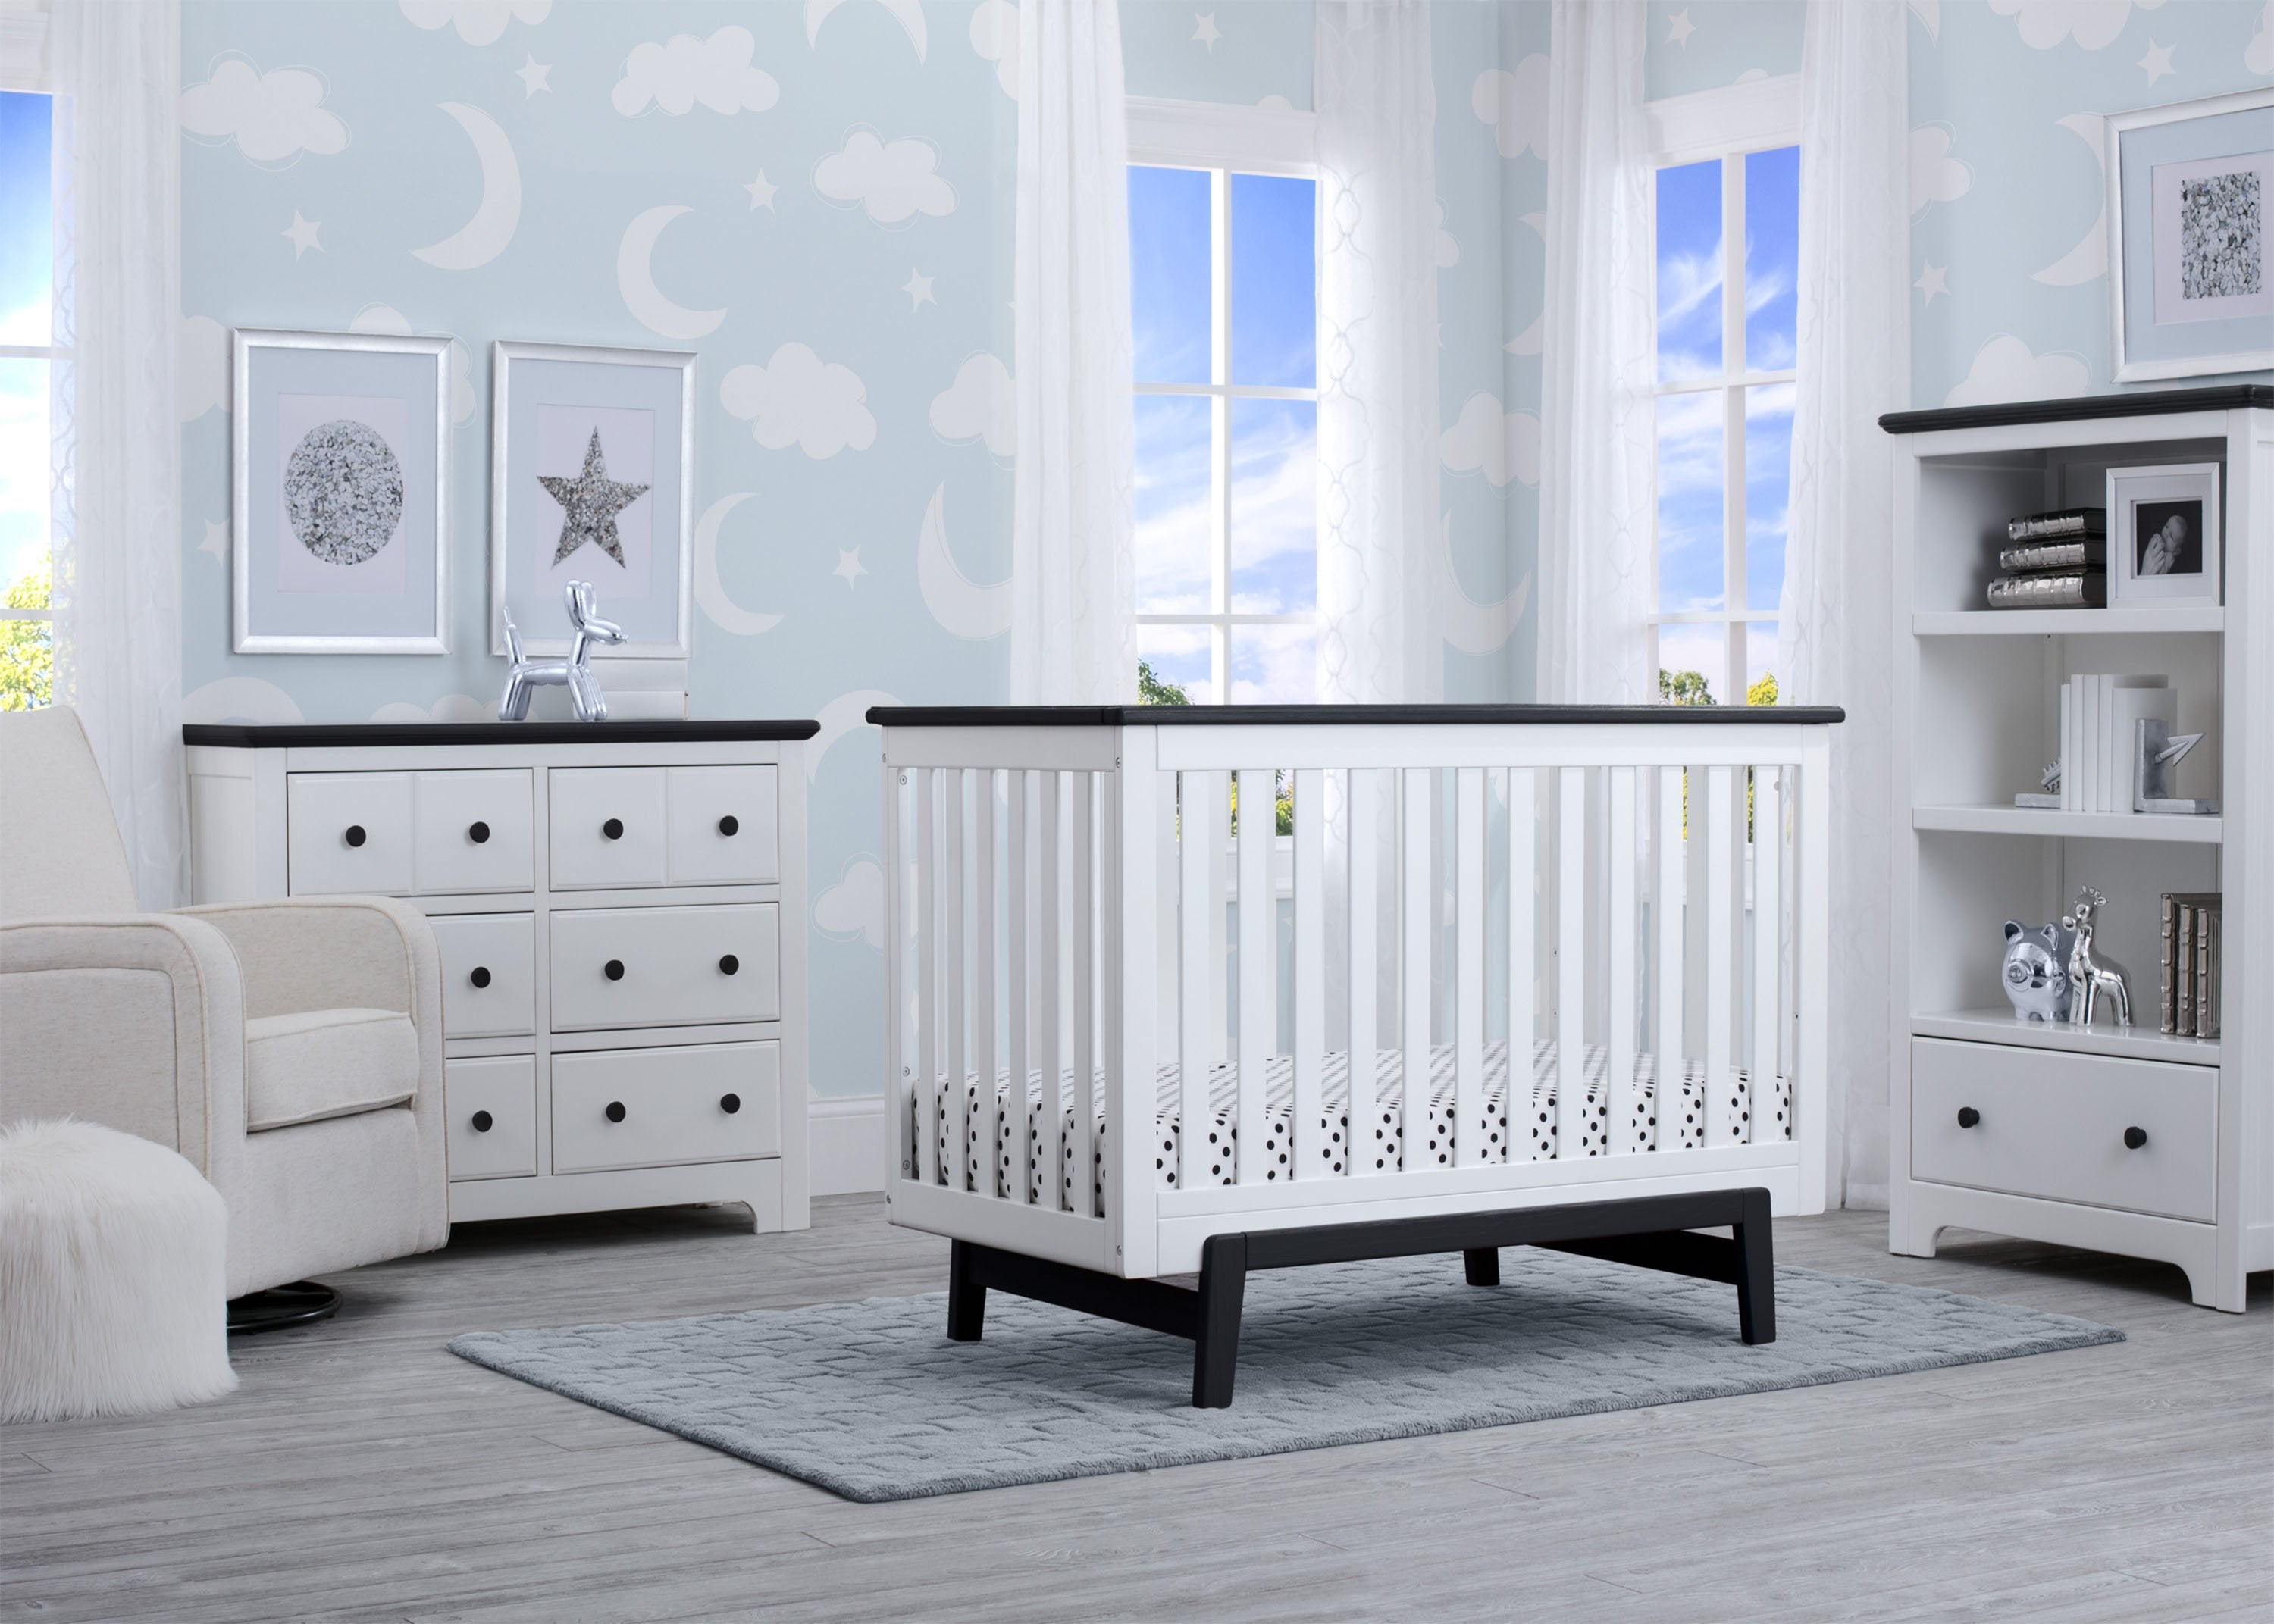 reviews kids for departments dressers dresser furniture spaces room display bayfront your baby product sale living